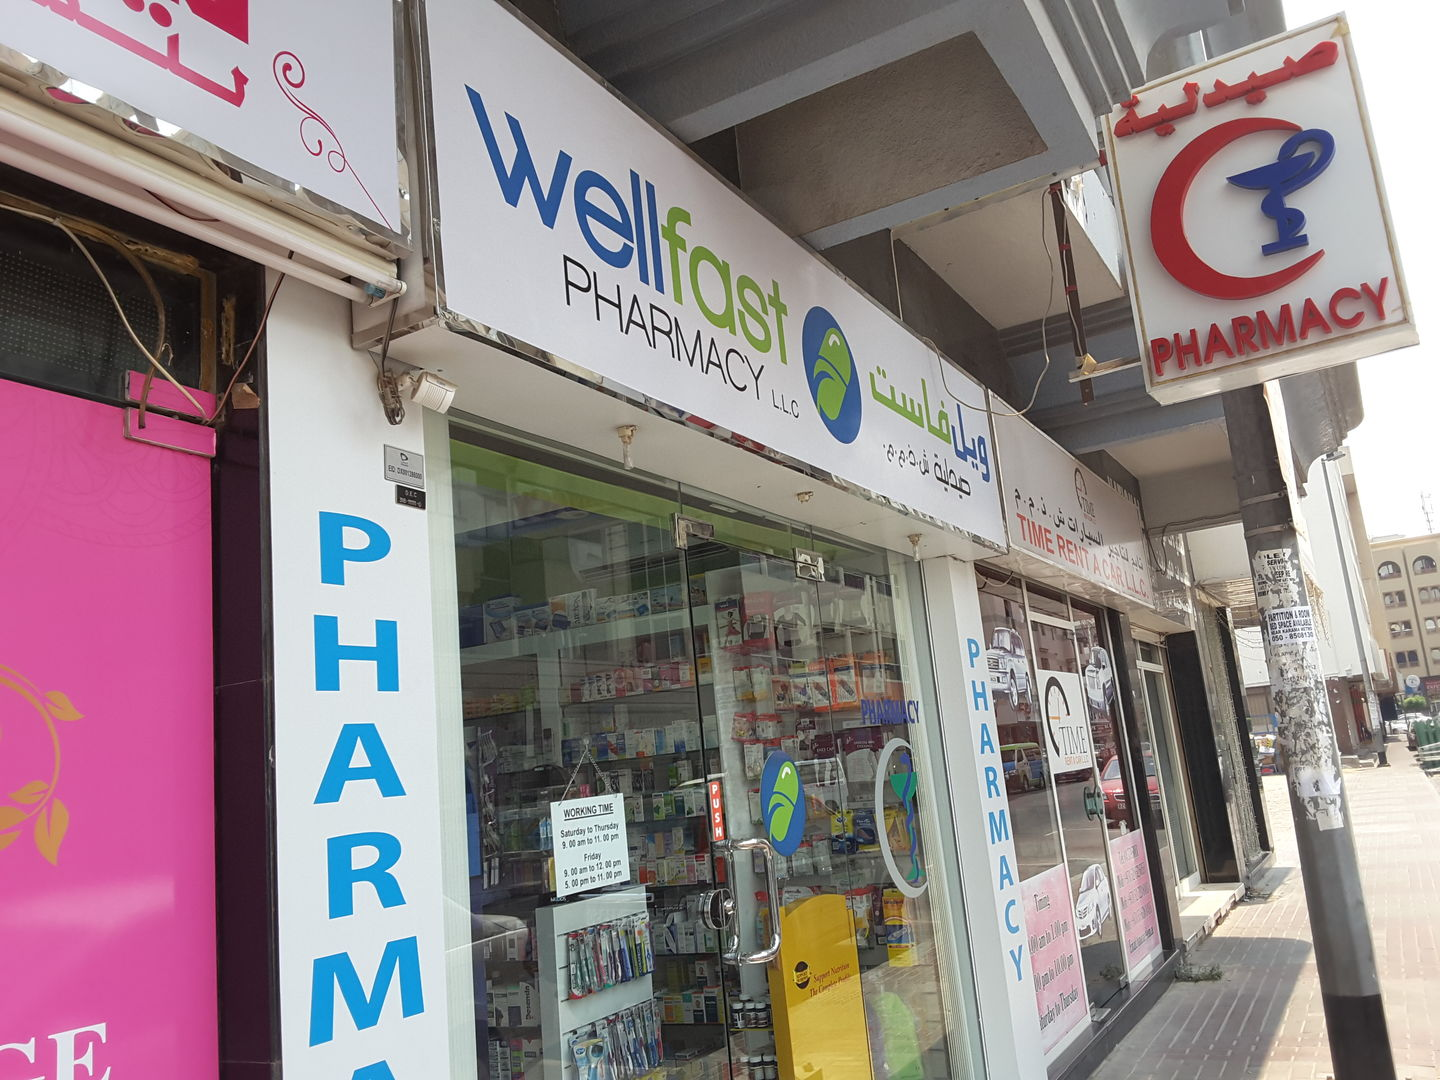 Walif-business-wellfast-pharmacy